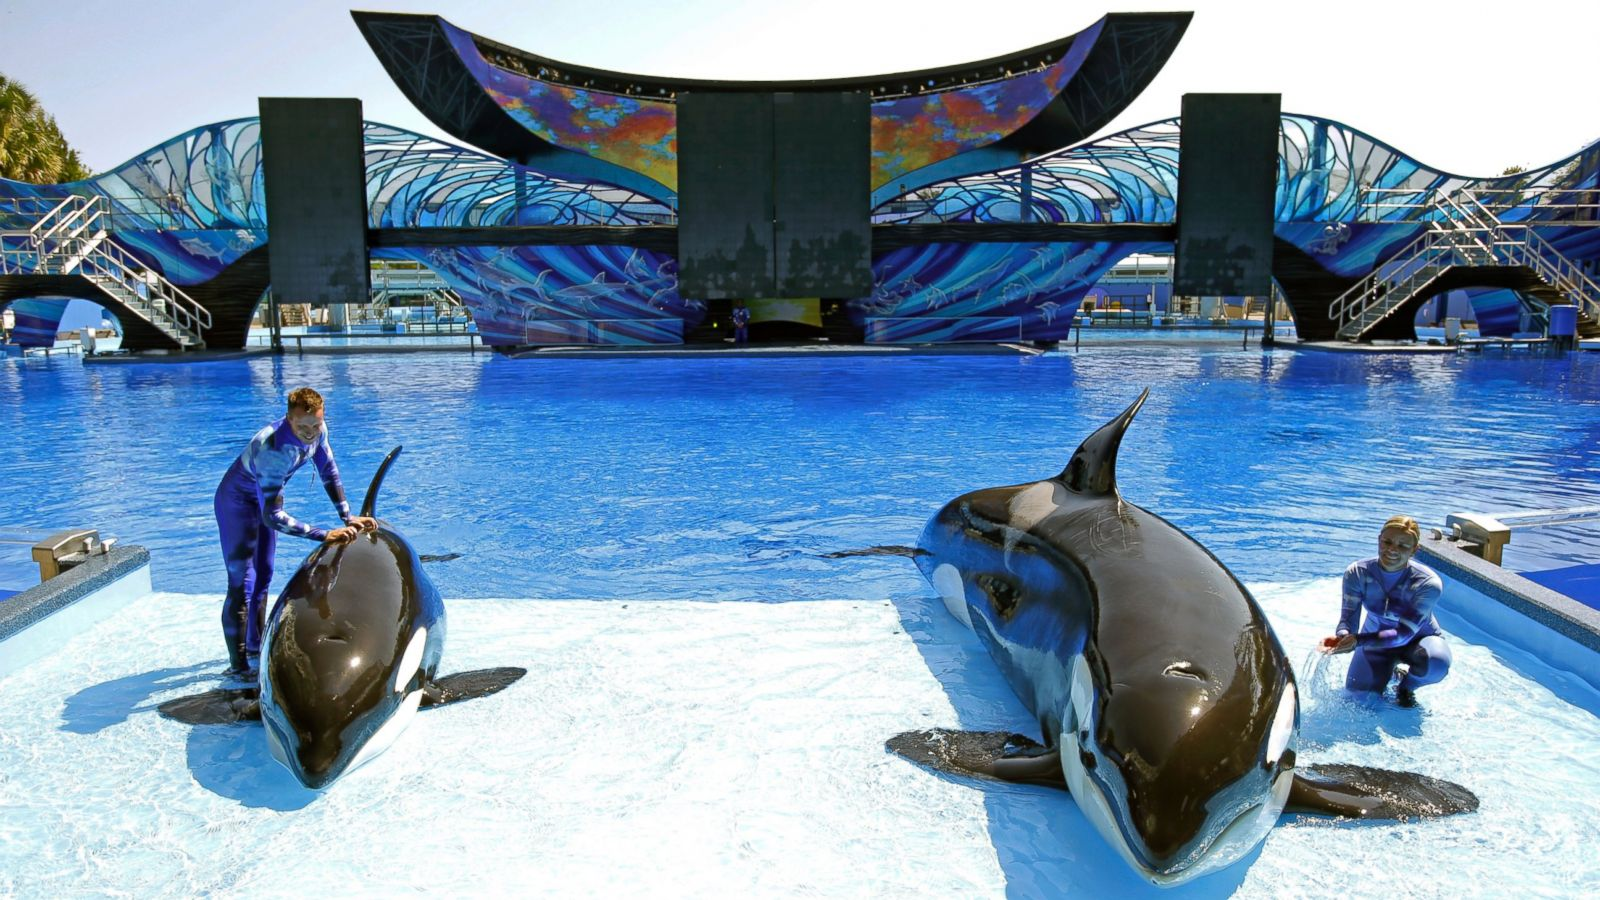 FILE - In this April 10, 2014, file photo, SeaWorld trainer Ryan Faulkner, left, with killer whale Melia, and Michelle Shoemaker, right, with Kayla work on a routine for a show at the Orlando, Fla., theme park. SeaWorld Parks & Entertainment is partnering with a United Arab Emirates company to build a theme park in Abu Dhabi in what will be the first SeaWorld park outside the United States and without orcas. Officials with SeaWorld and Abu Dhabi-government-backed Miral Asset Management said Tuesday, Dec. 13, 2016, that the SeaWorld park will open in 2022 in Abu Dhabi's Yas Island, a man-made island that is fast becoming a tourism and entertainment center. (AP Photo/John Raoux, File)